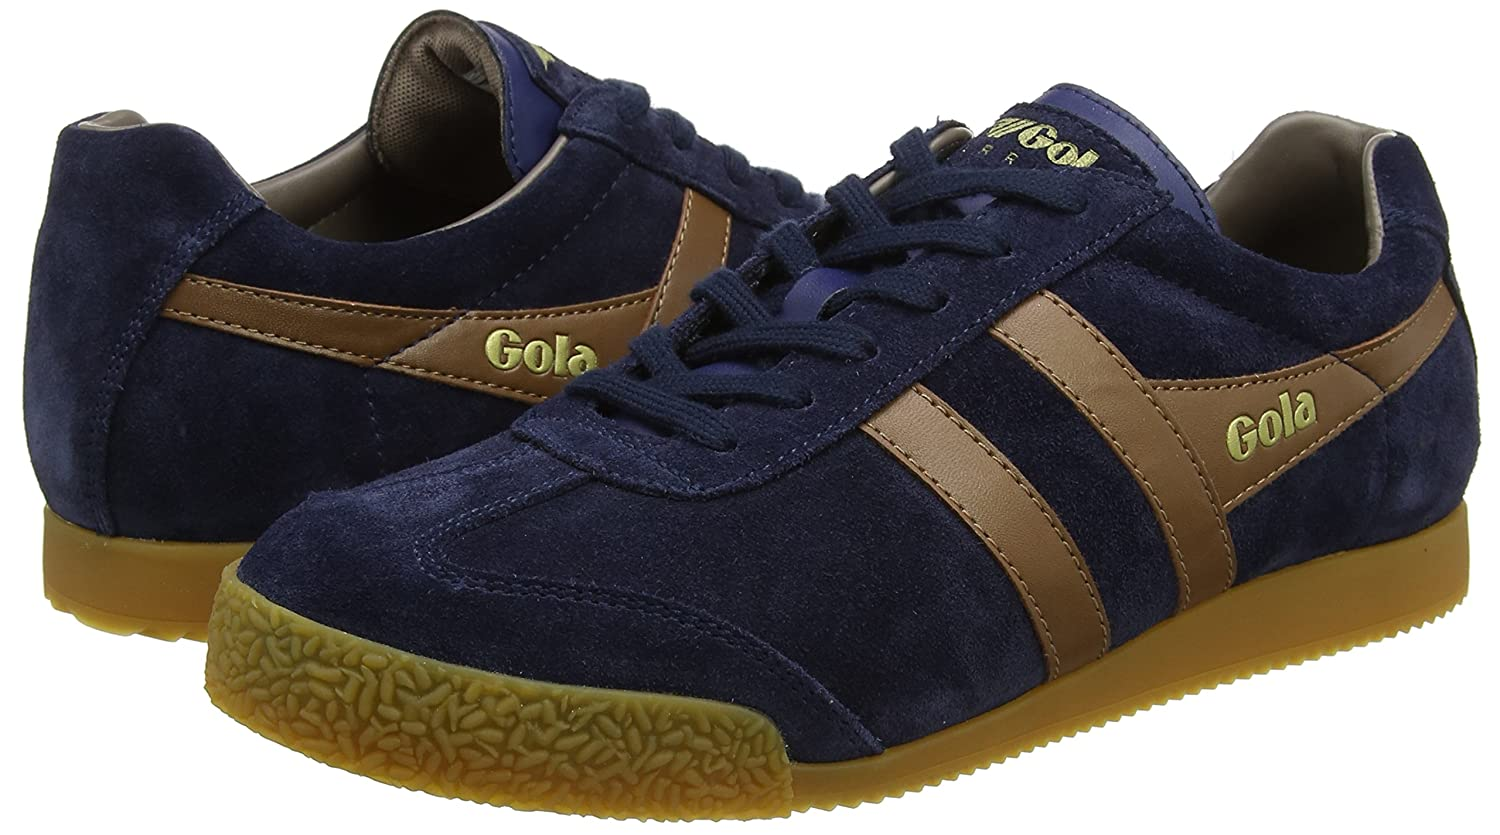 Gola Men's Harrier Fashion Sneaker B07235QZ56 9 D(M) US|Navy/Tobacco/Stone